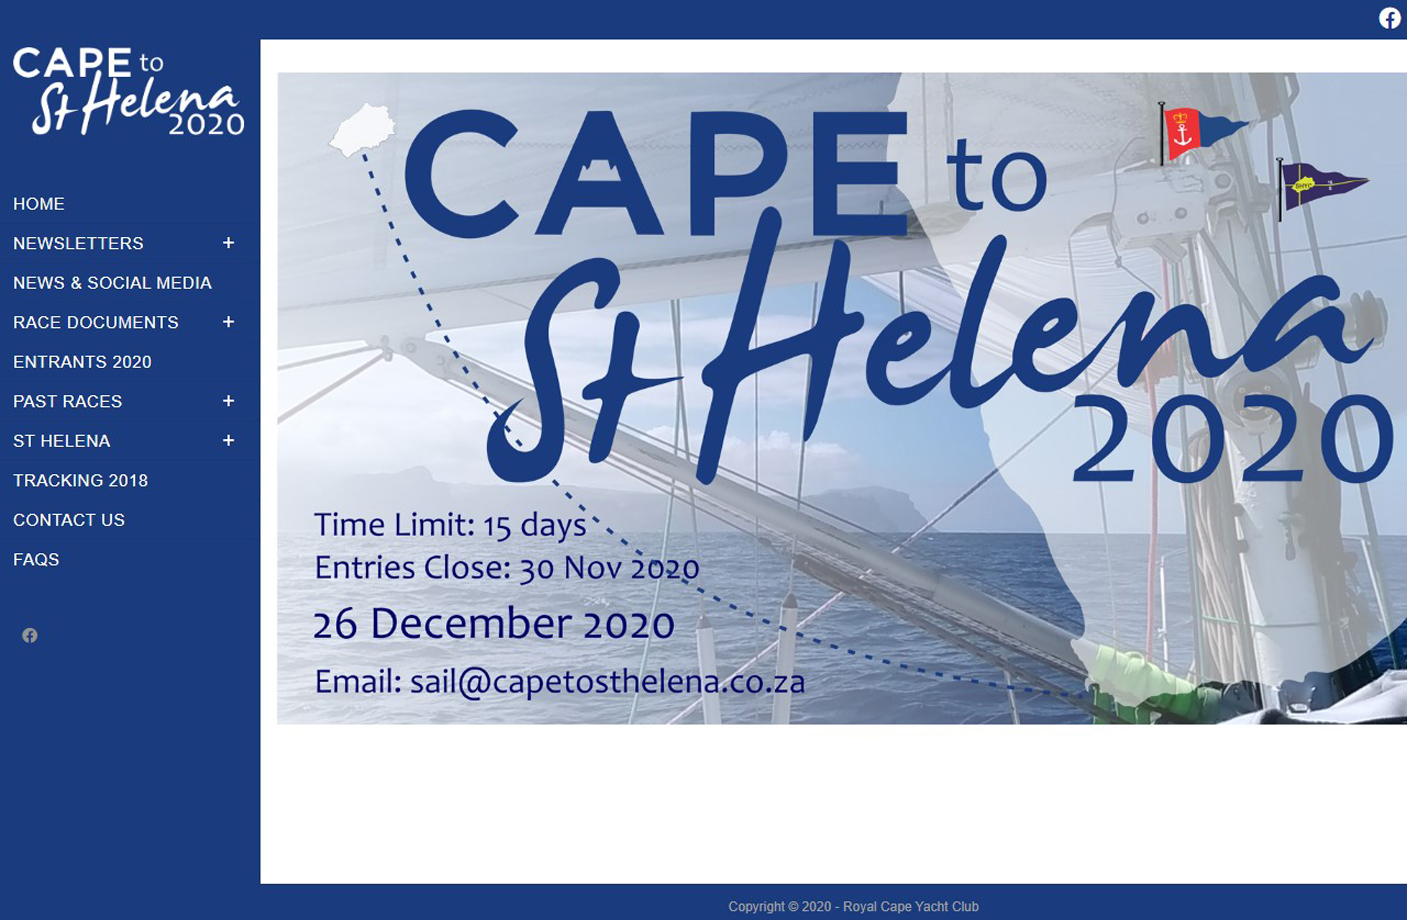 Cape to St Helena Race